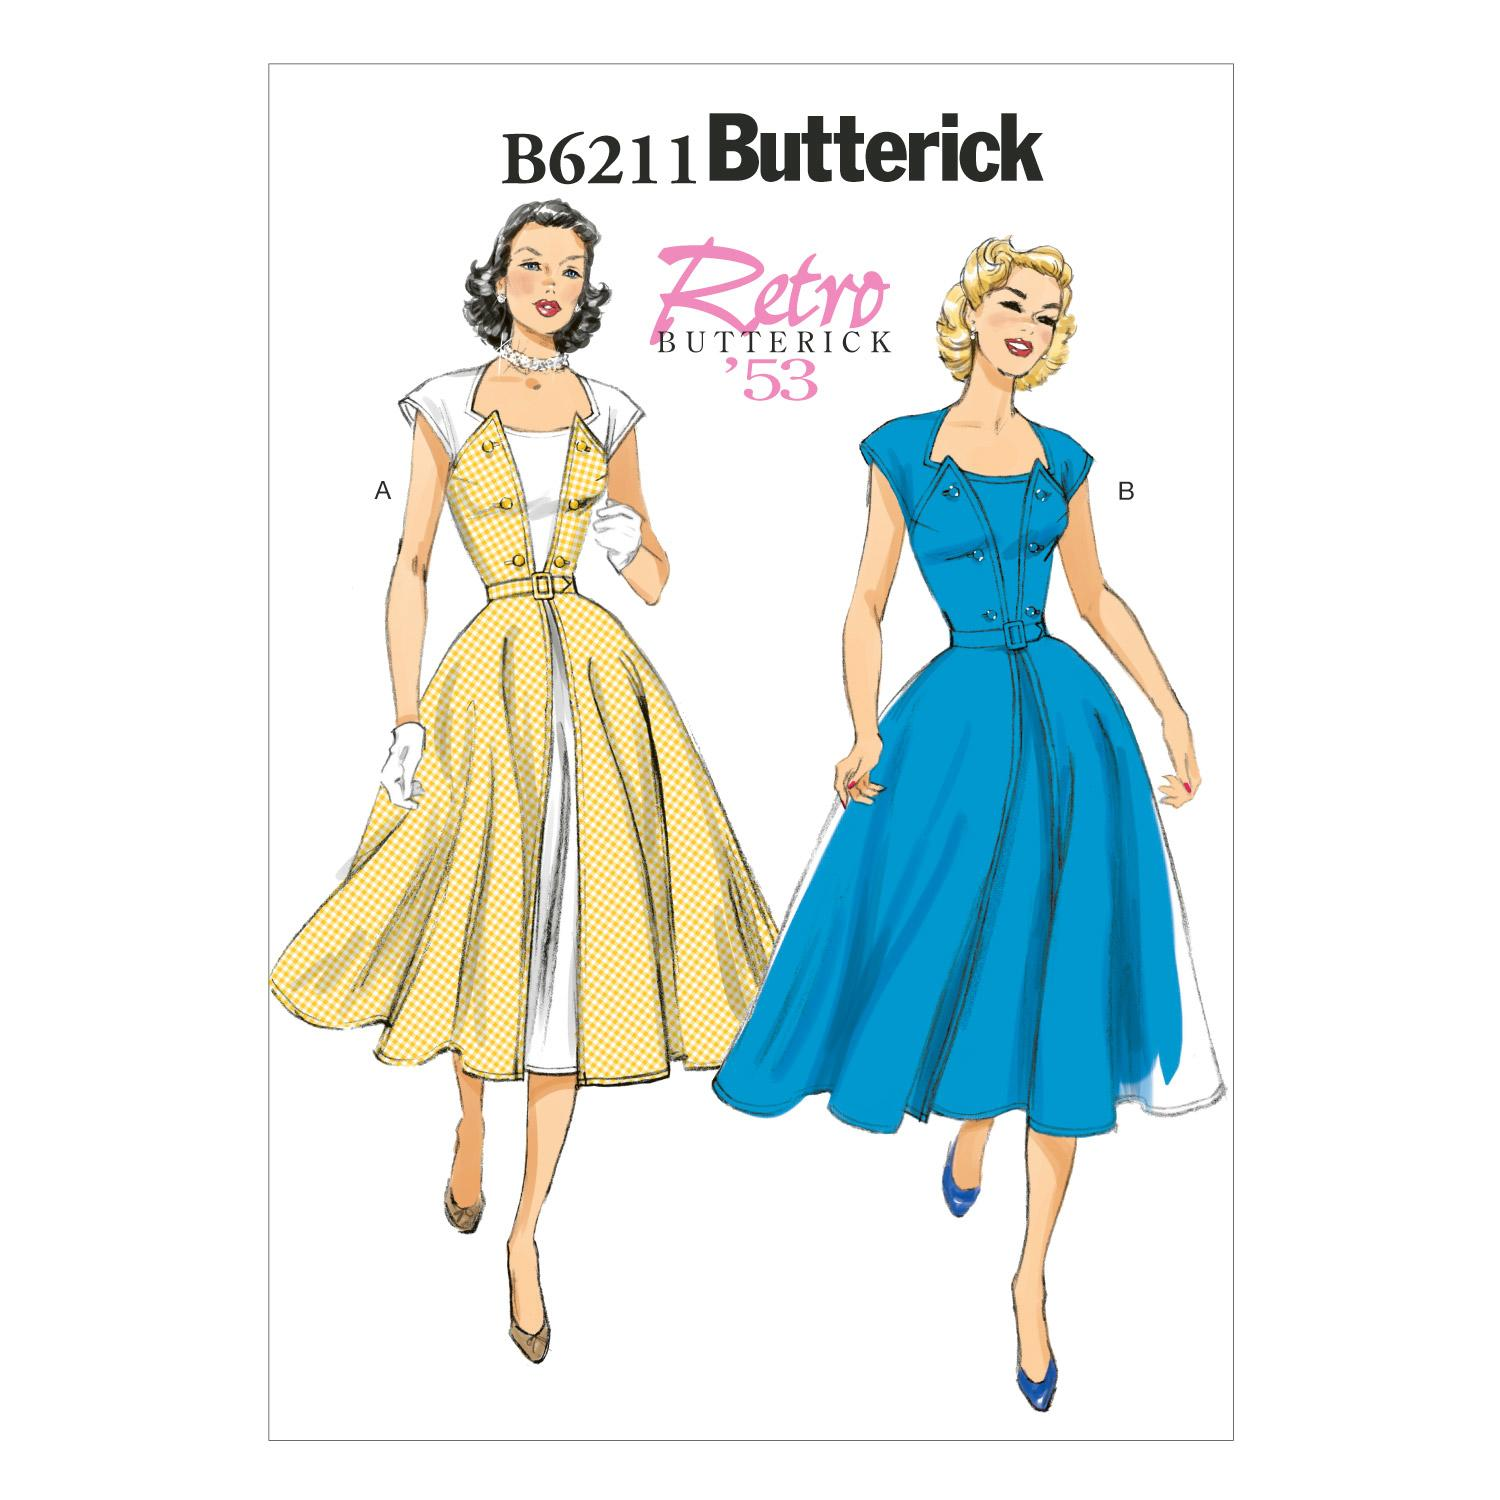 Butterick B6211 Misses' Dress and Belt